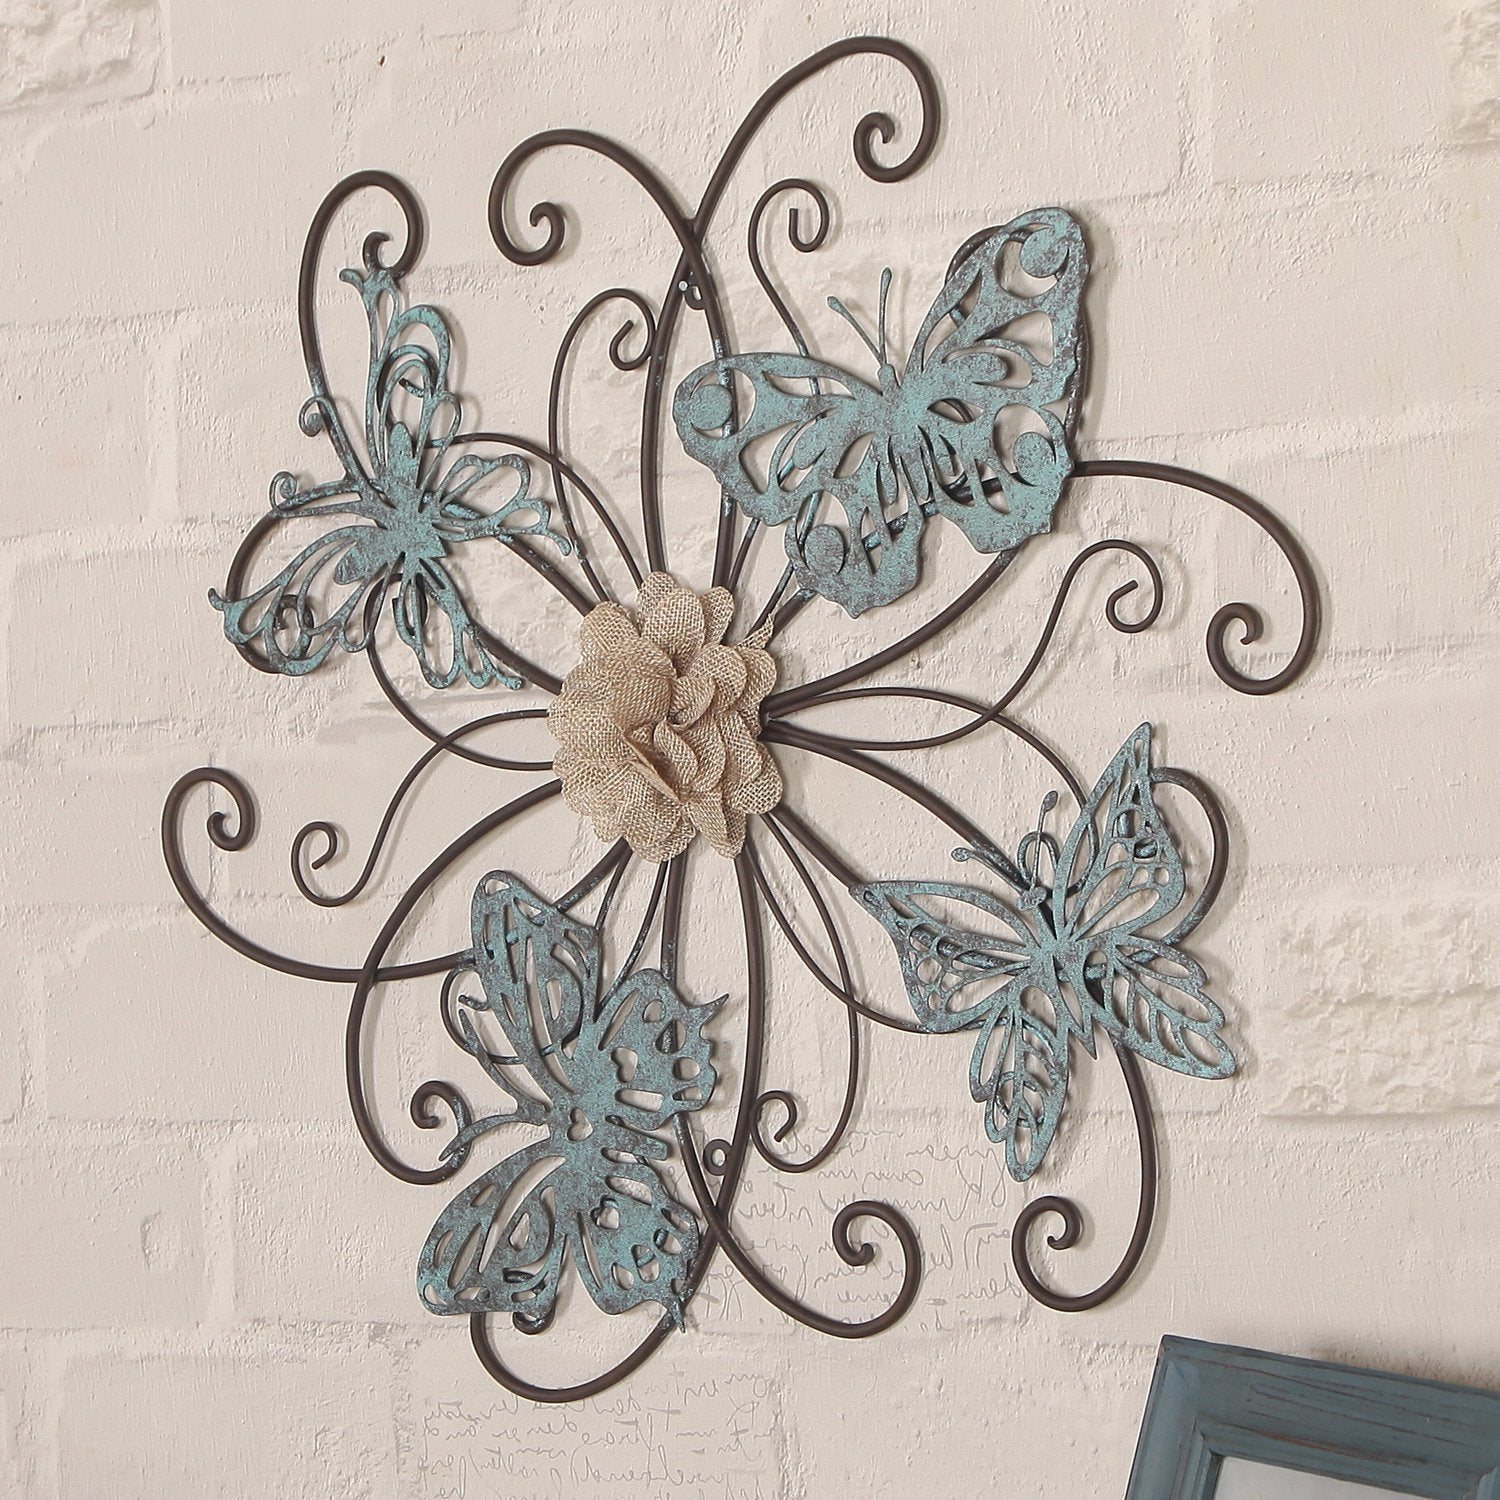 Adeco Flower And Butterfly Urban Design Metal Wall Decor For Nature Home Art Intended For Flower And Butterfly Urban Design Metal Wall Decor (View 5 of 30)